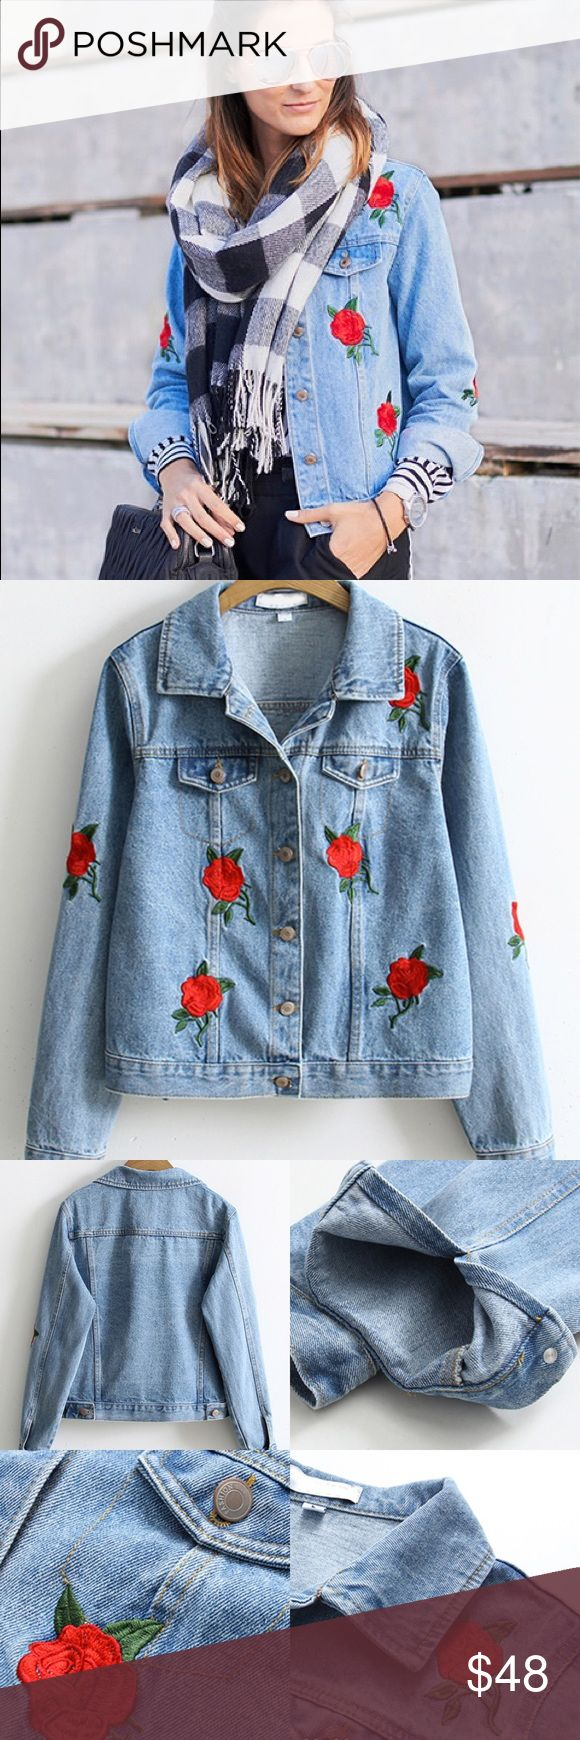 Flower embroidered denim jacket Brand new! Please refer to sizing in picture. Please let me know what size you would like, and will be shipped out to you in 3-5 days. Thank you. Not FP, just posted for exposure Free People Jackets & Coats Jean Jackets